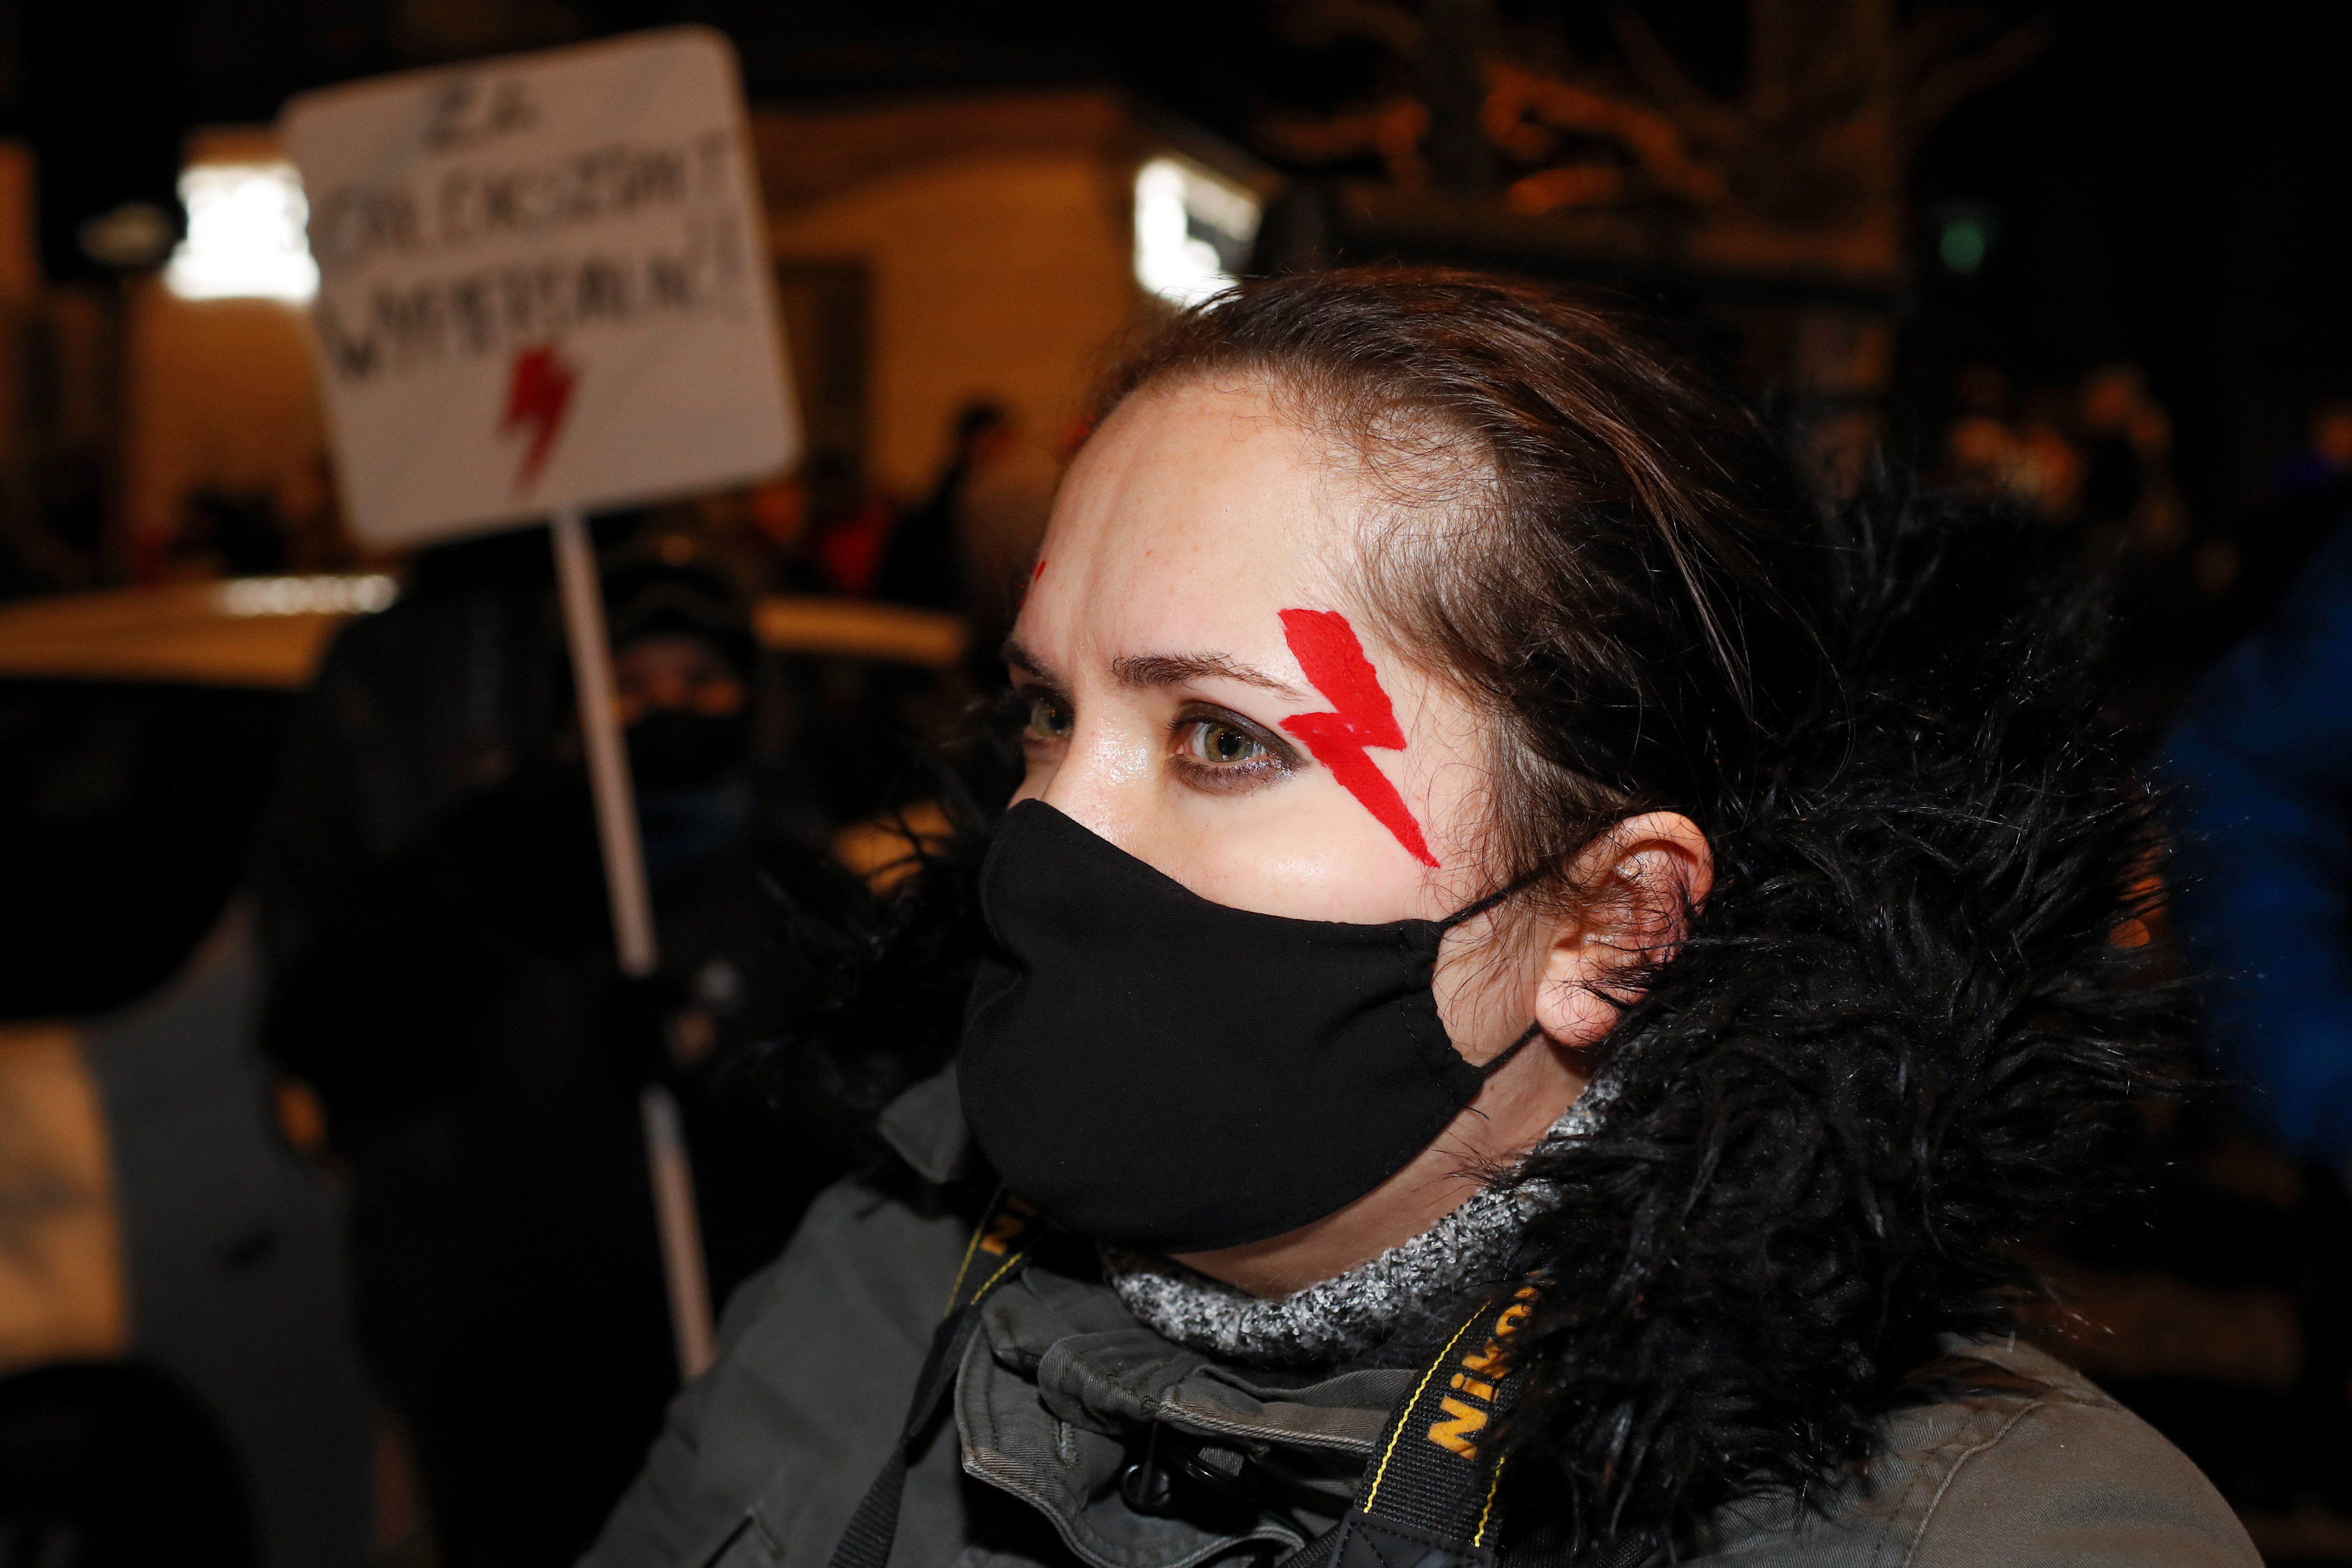 A demonstrator with a red lightning bolt on her face attends a protest against verdict restricting abortion rights in Warsaw, Poland, January 27, 2021. REUTERS/Kacper Pempel